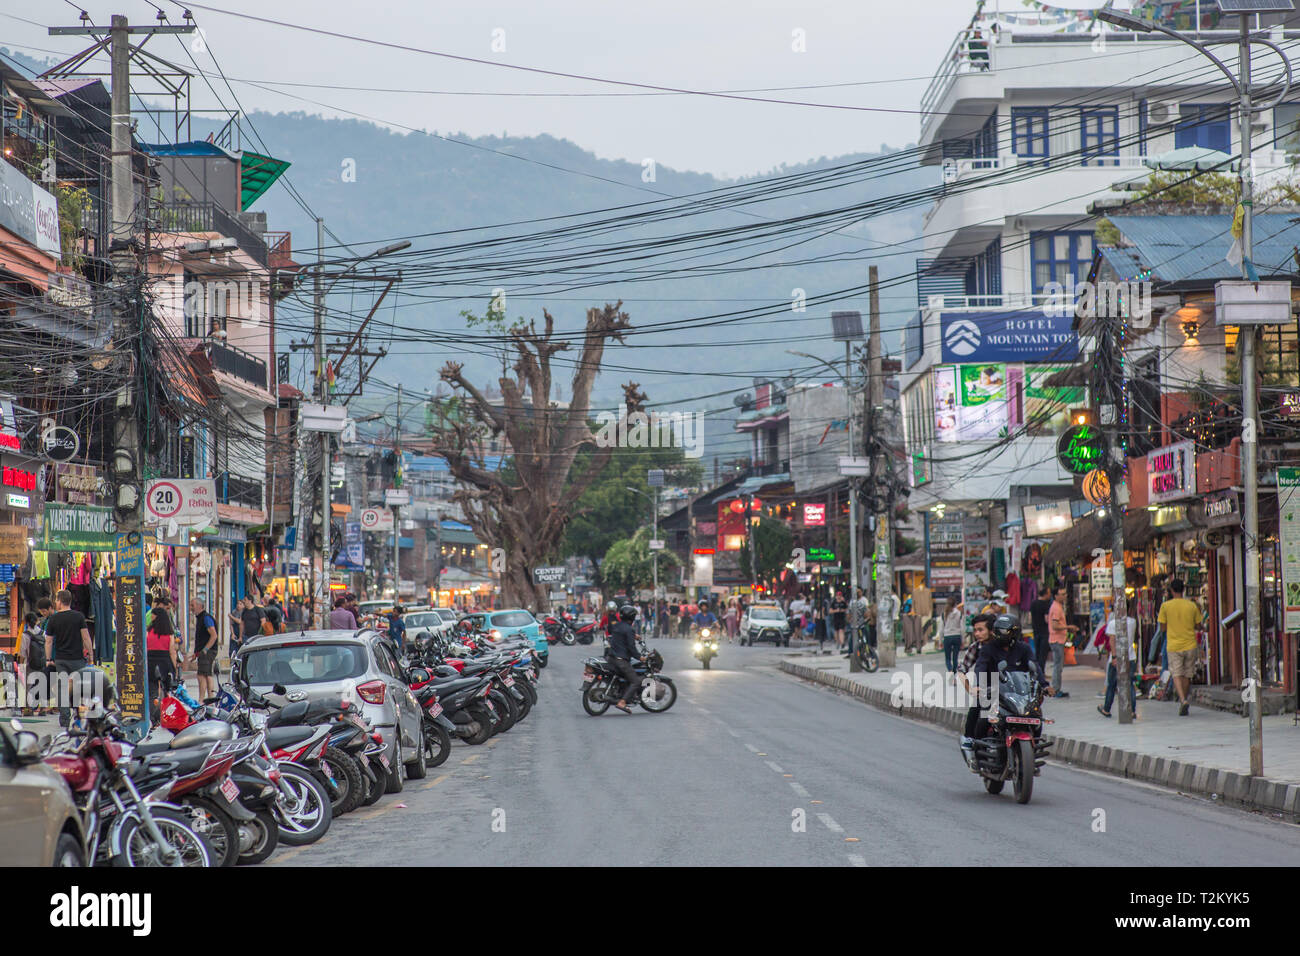 A calm road in Pokhara, Nepal on a cloudy afternoon. - Stock Image